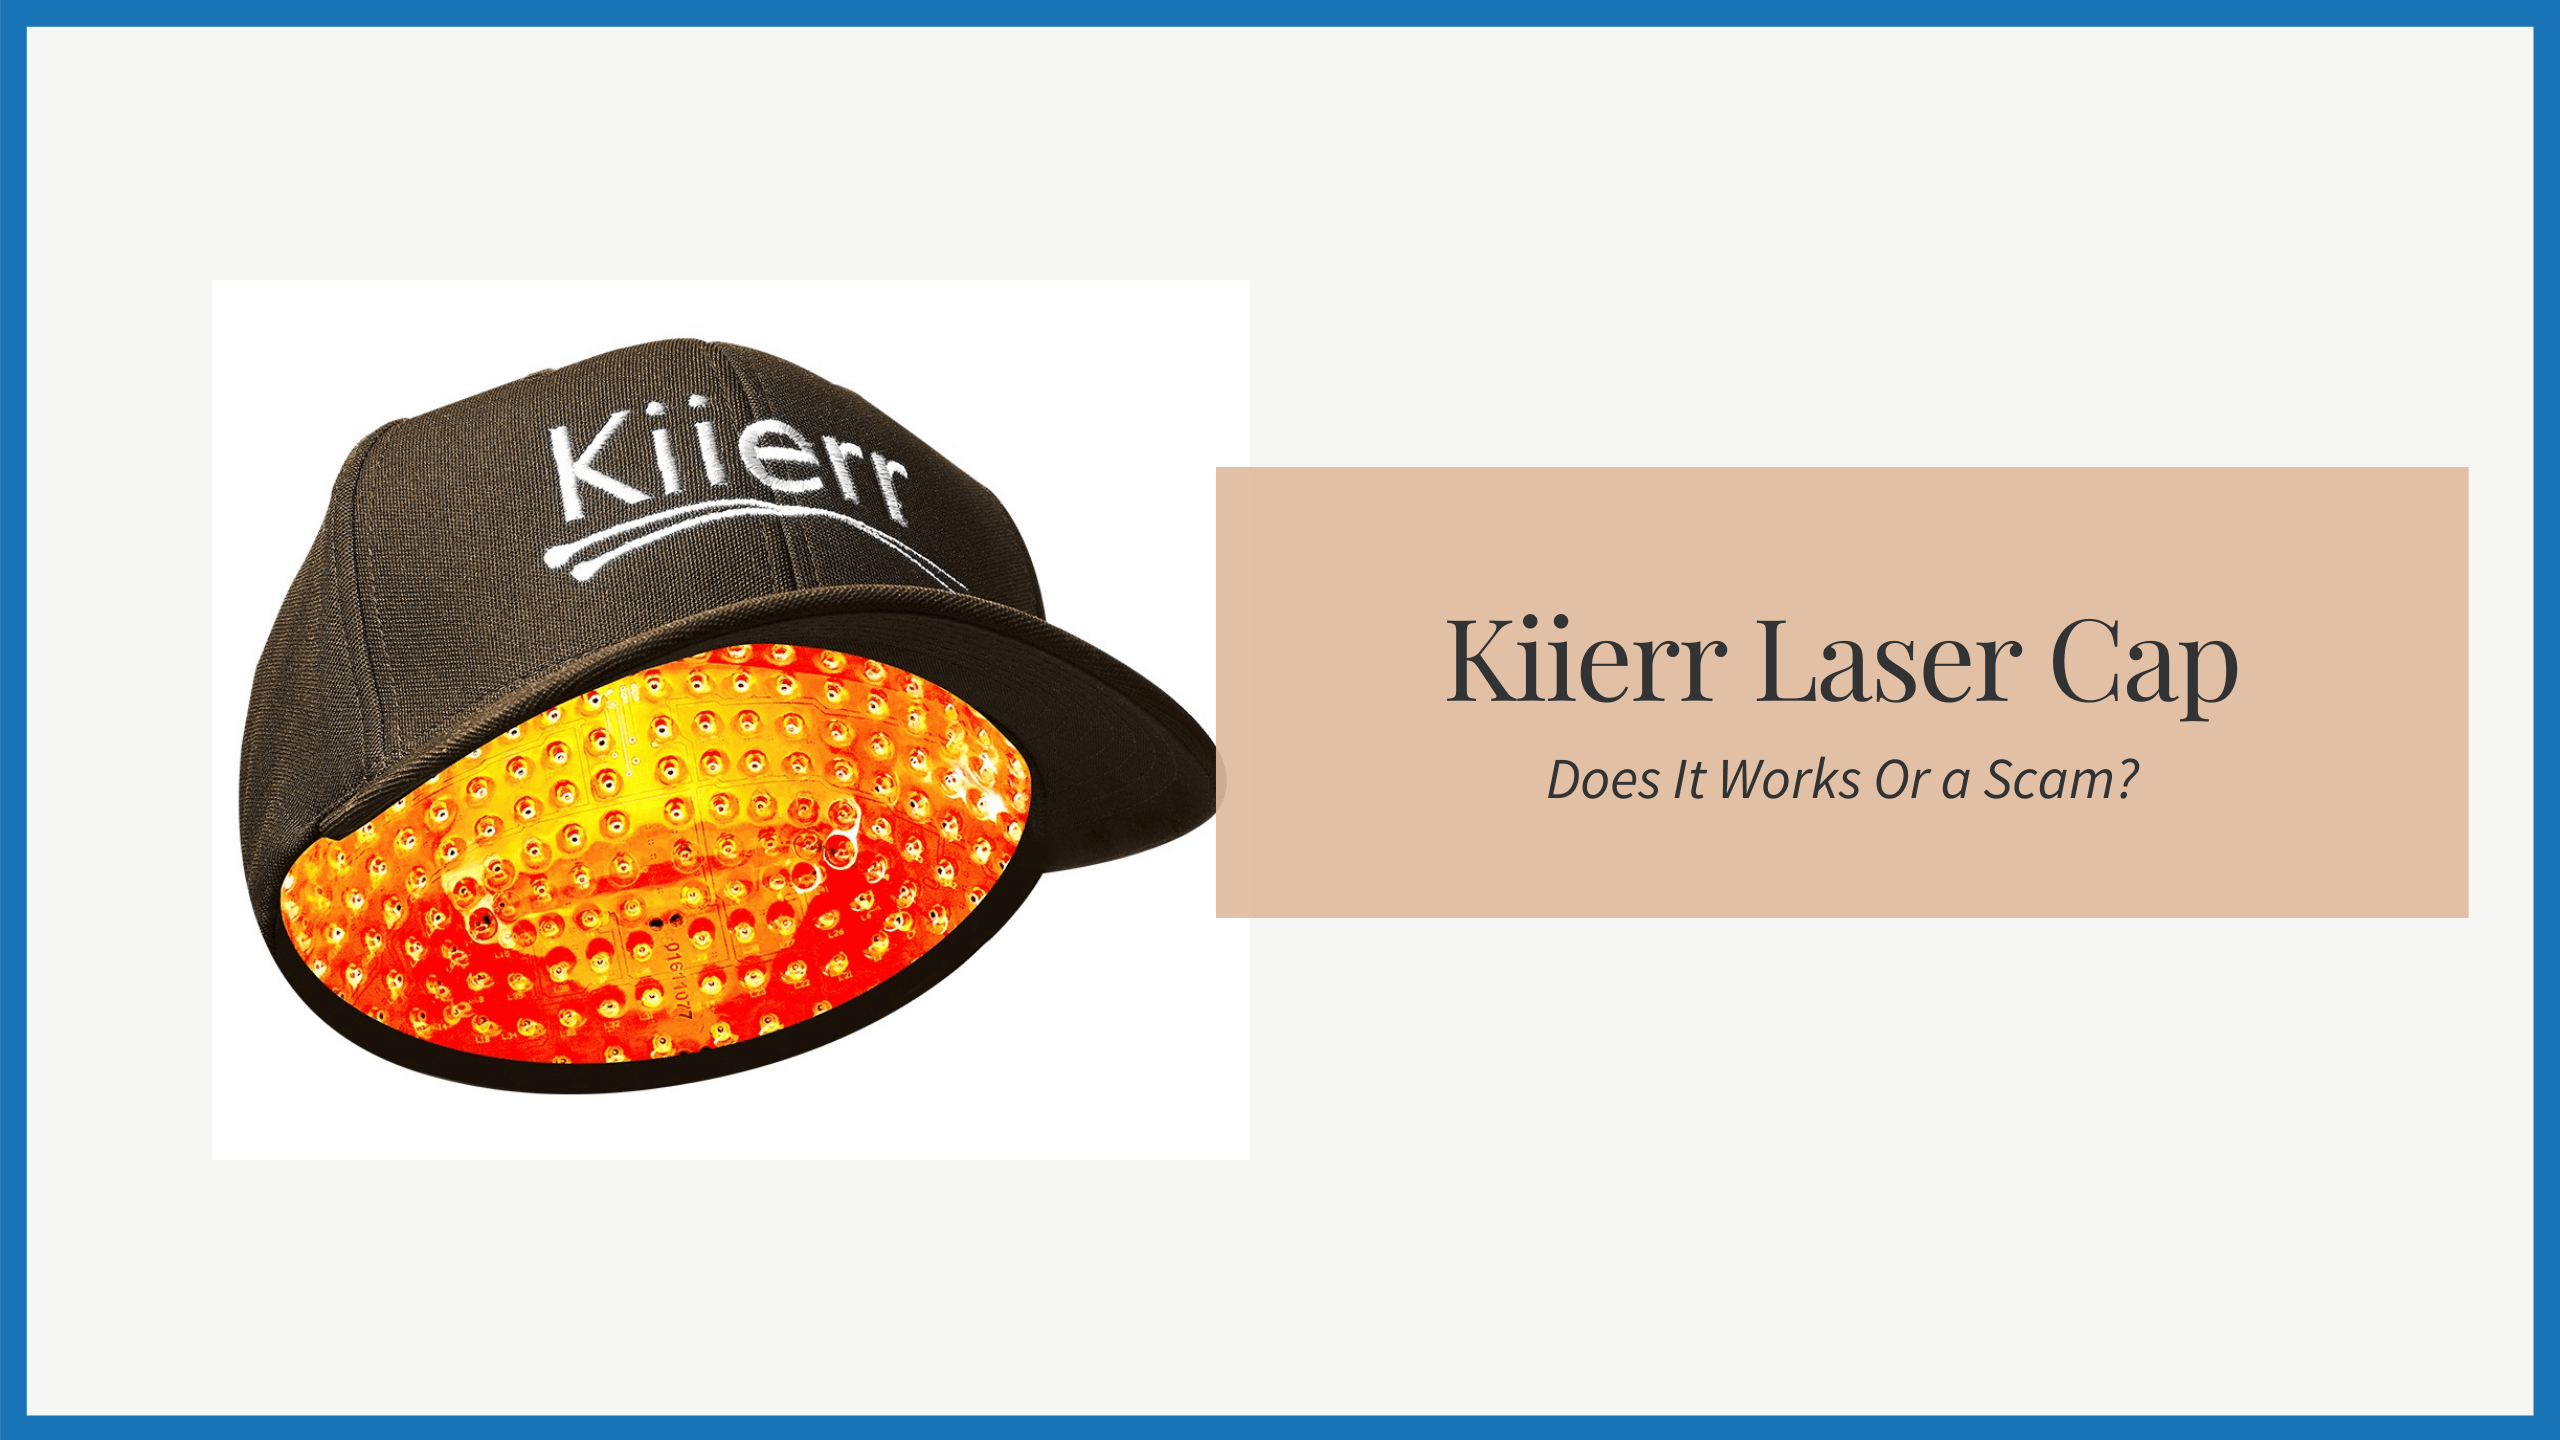 Kiierr Laser Cap Reviews